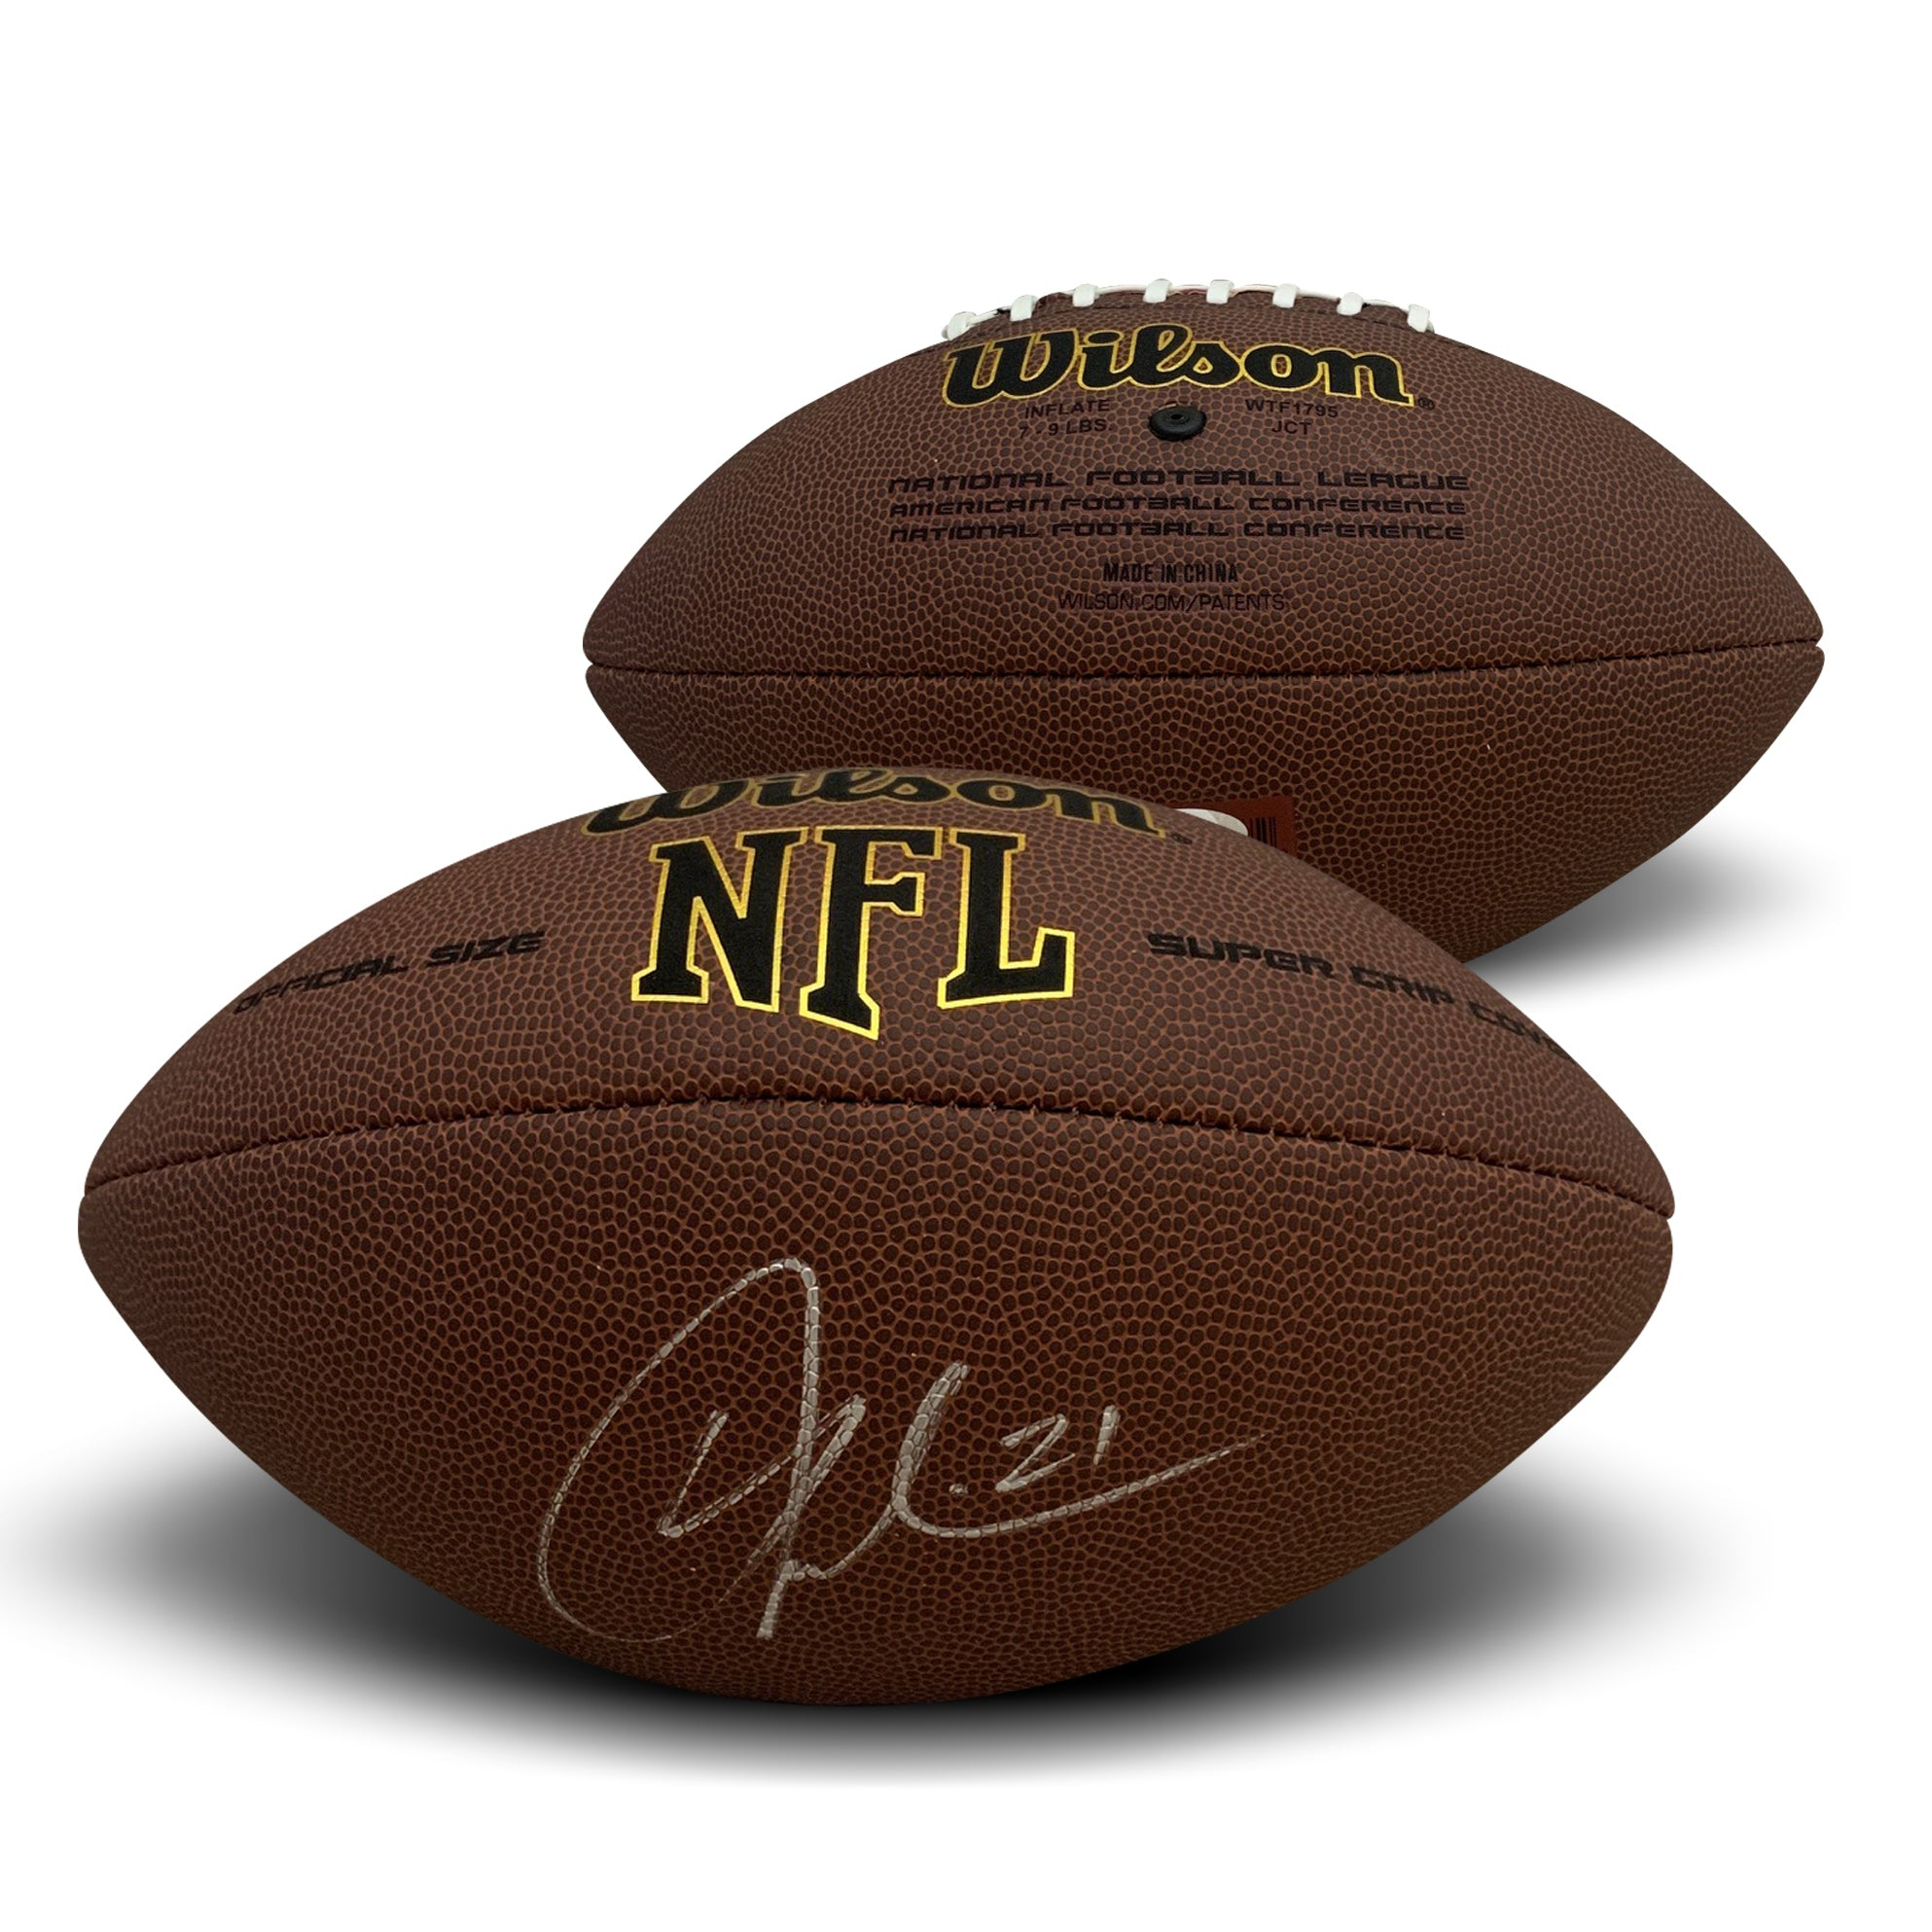 LaDainian Tomlinson San Diego Chargers Autographed NFL Replica Full Size Signed Football PSA DNA COA-Powers Sports Memorabilia